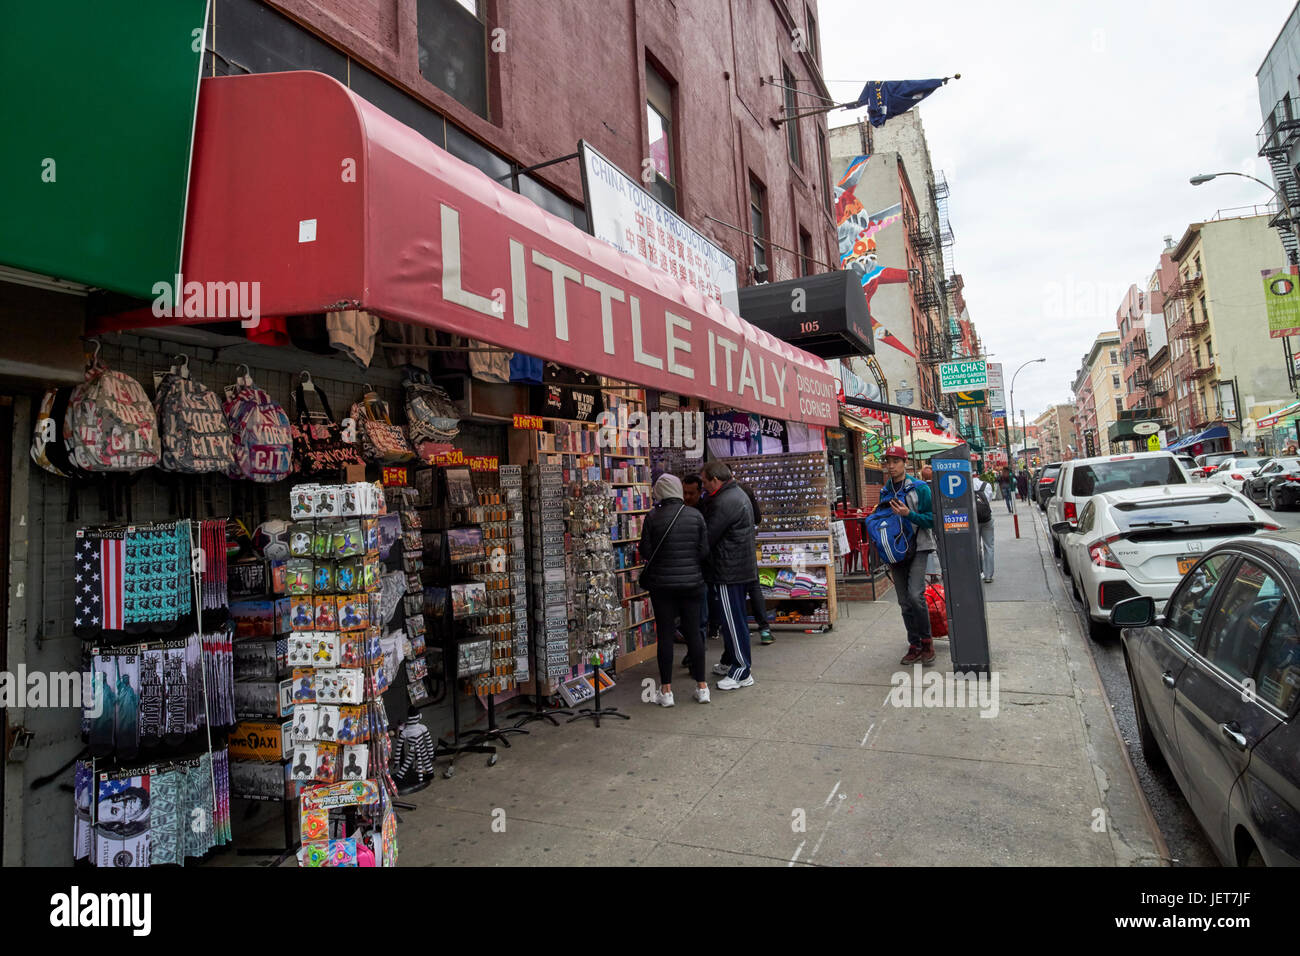 little italy gift shop store New York City USA - Stock Image